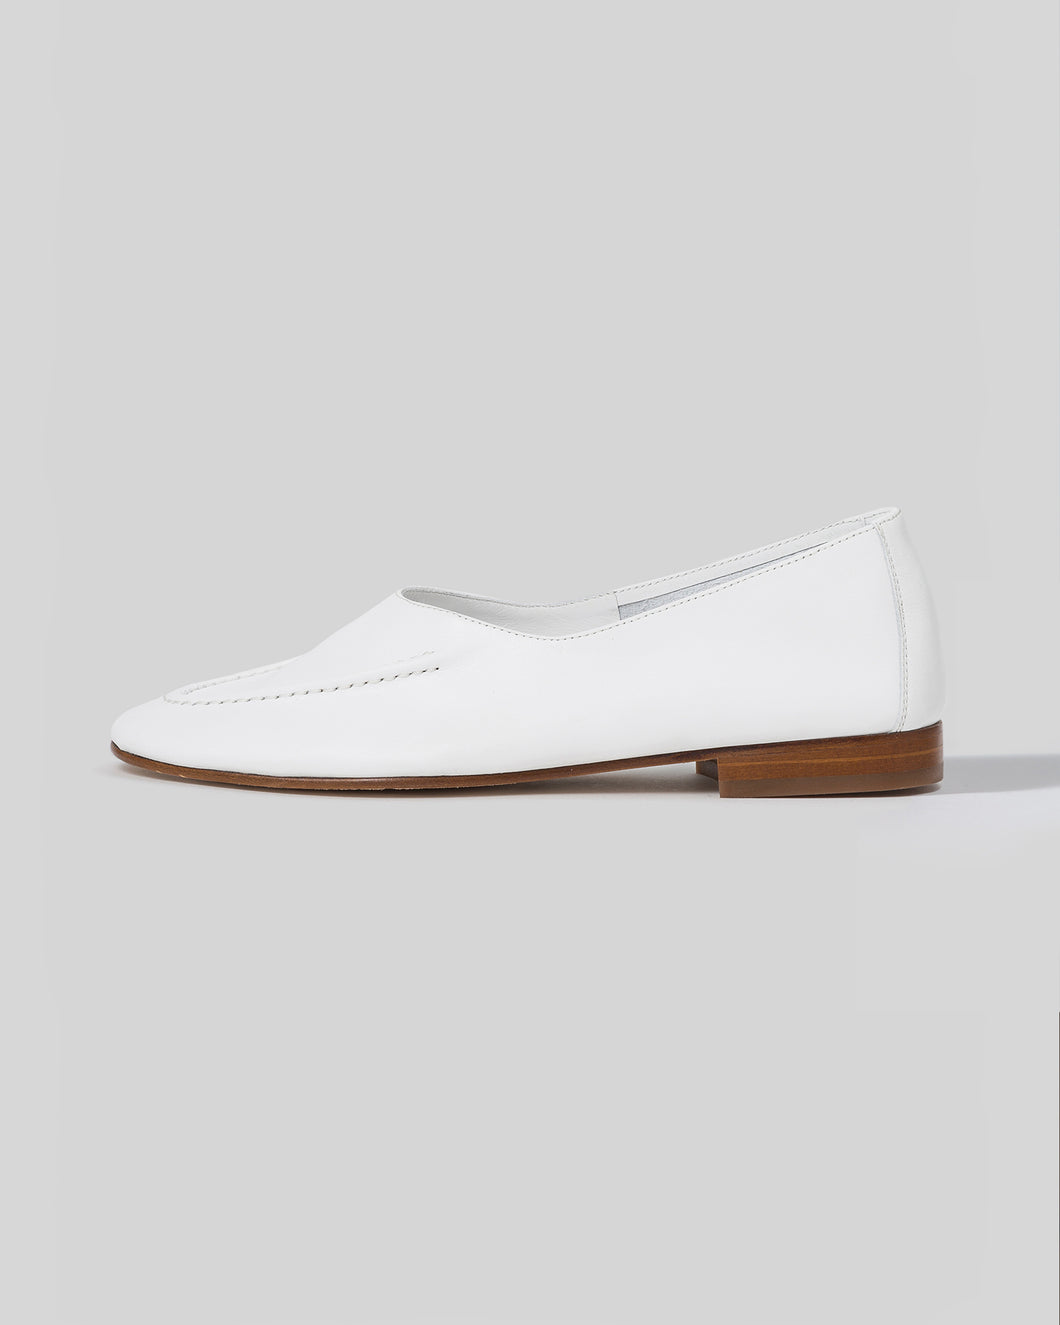 JULIOL - High Cut Deconstructed Loafer